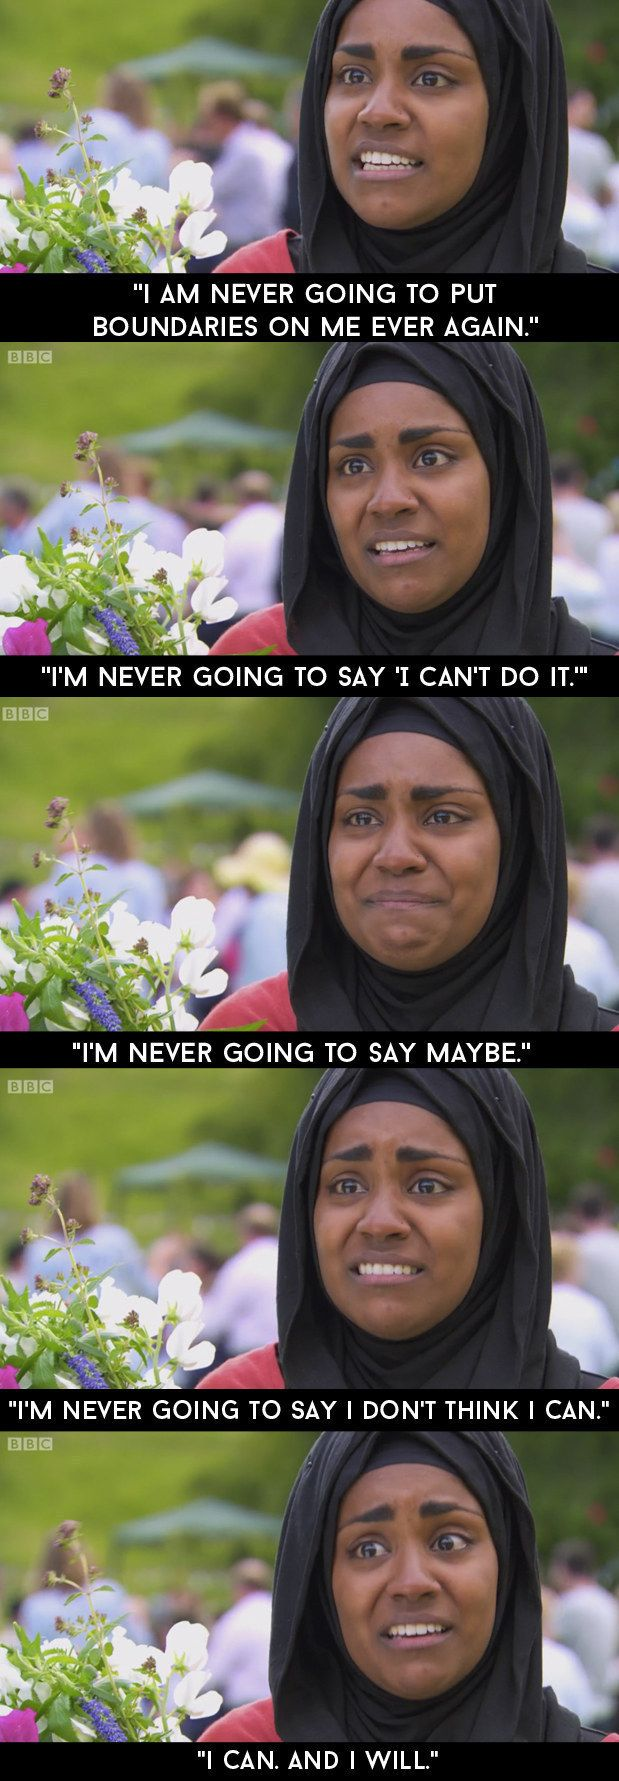 The <i>Bake Off</i> finalists' relationship on screen was amazing last night.